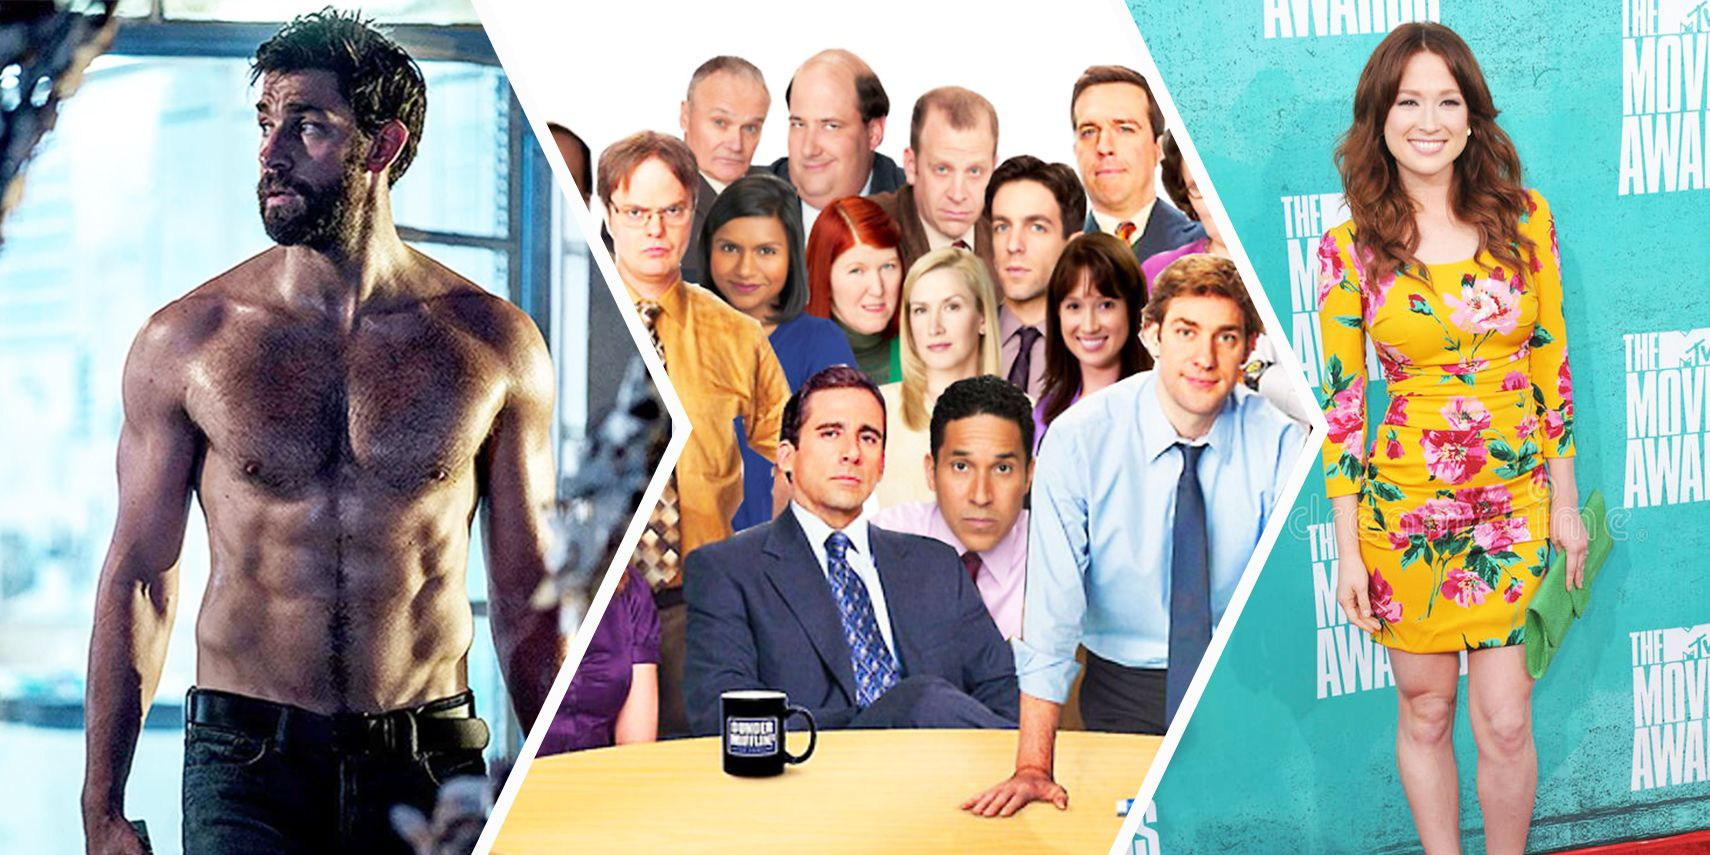 The Cast Of The Office: What They Looked Like In Their First